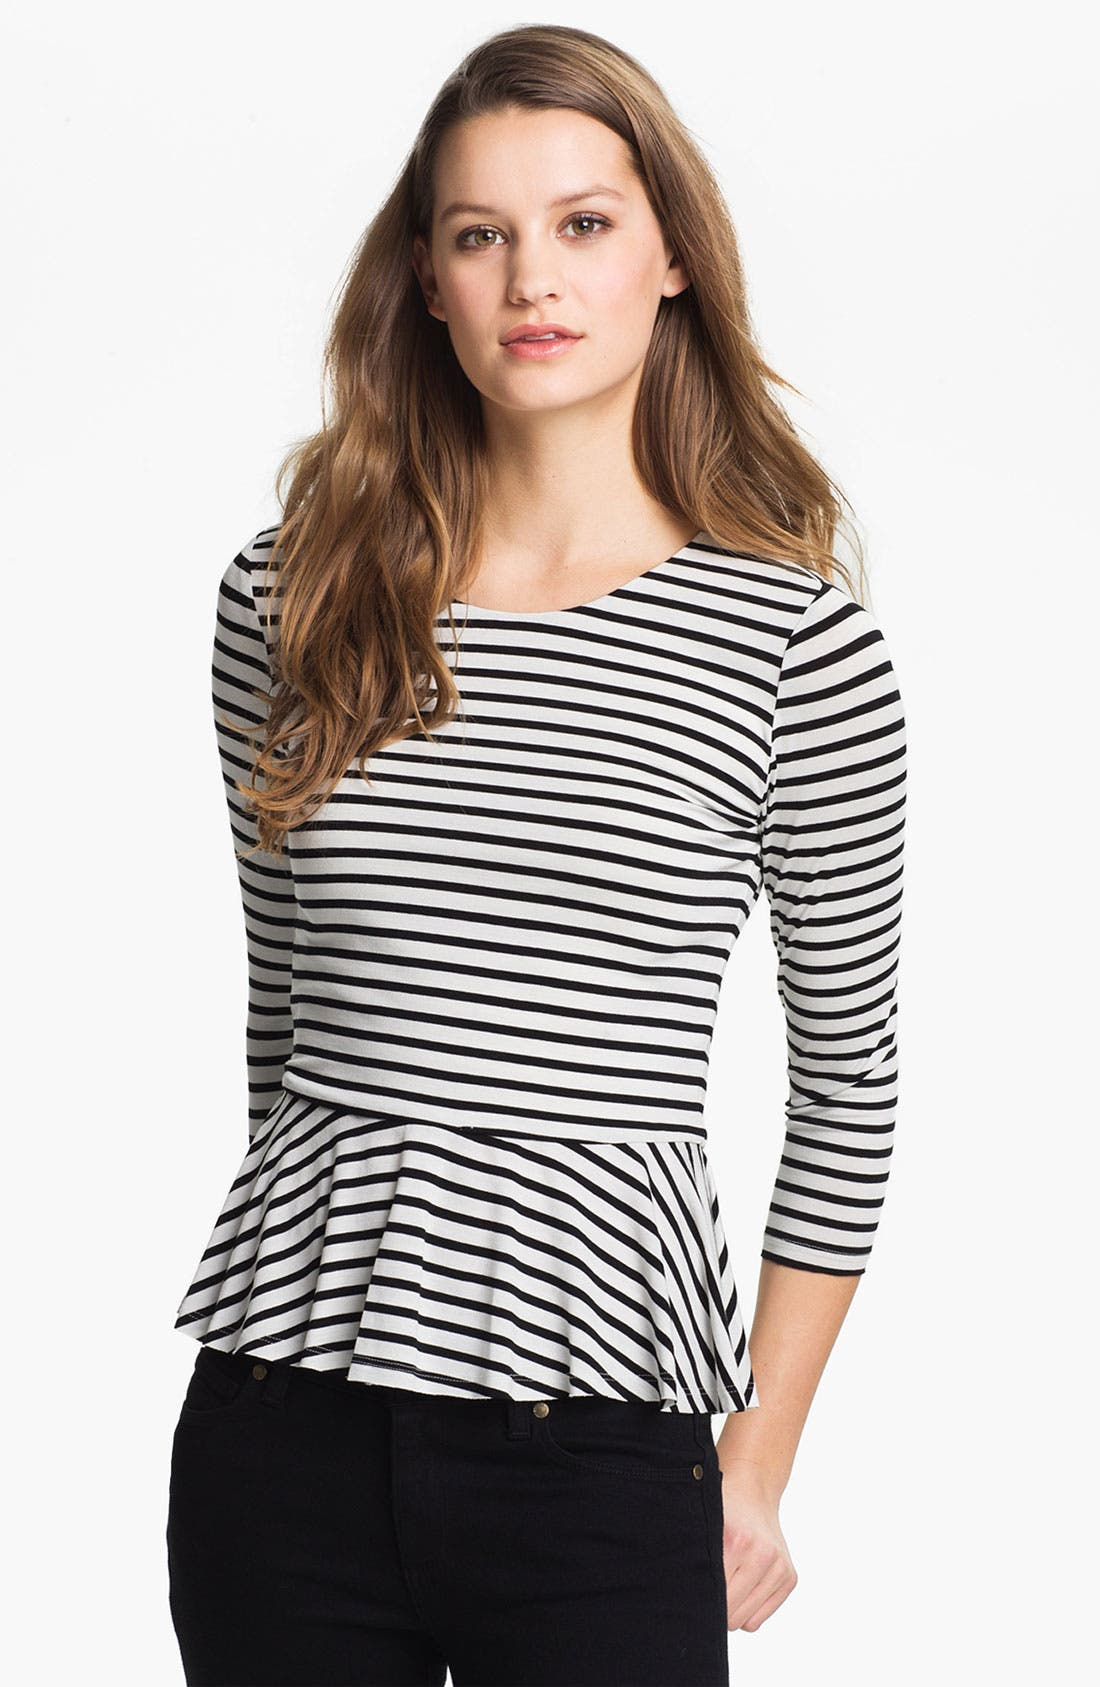 Alternate Image 1 Selected - Vince Camuto Stripe Peplum Top